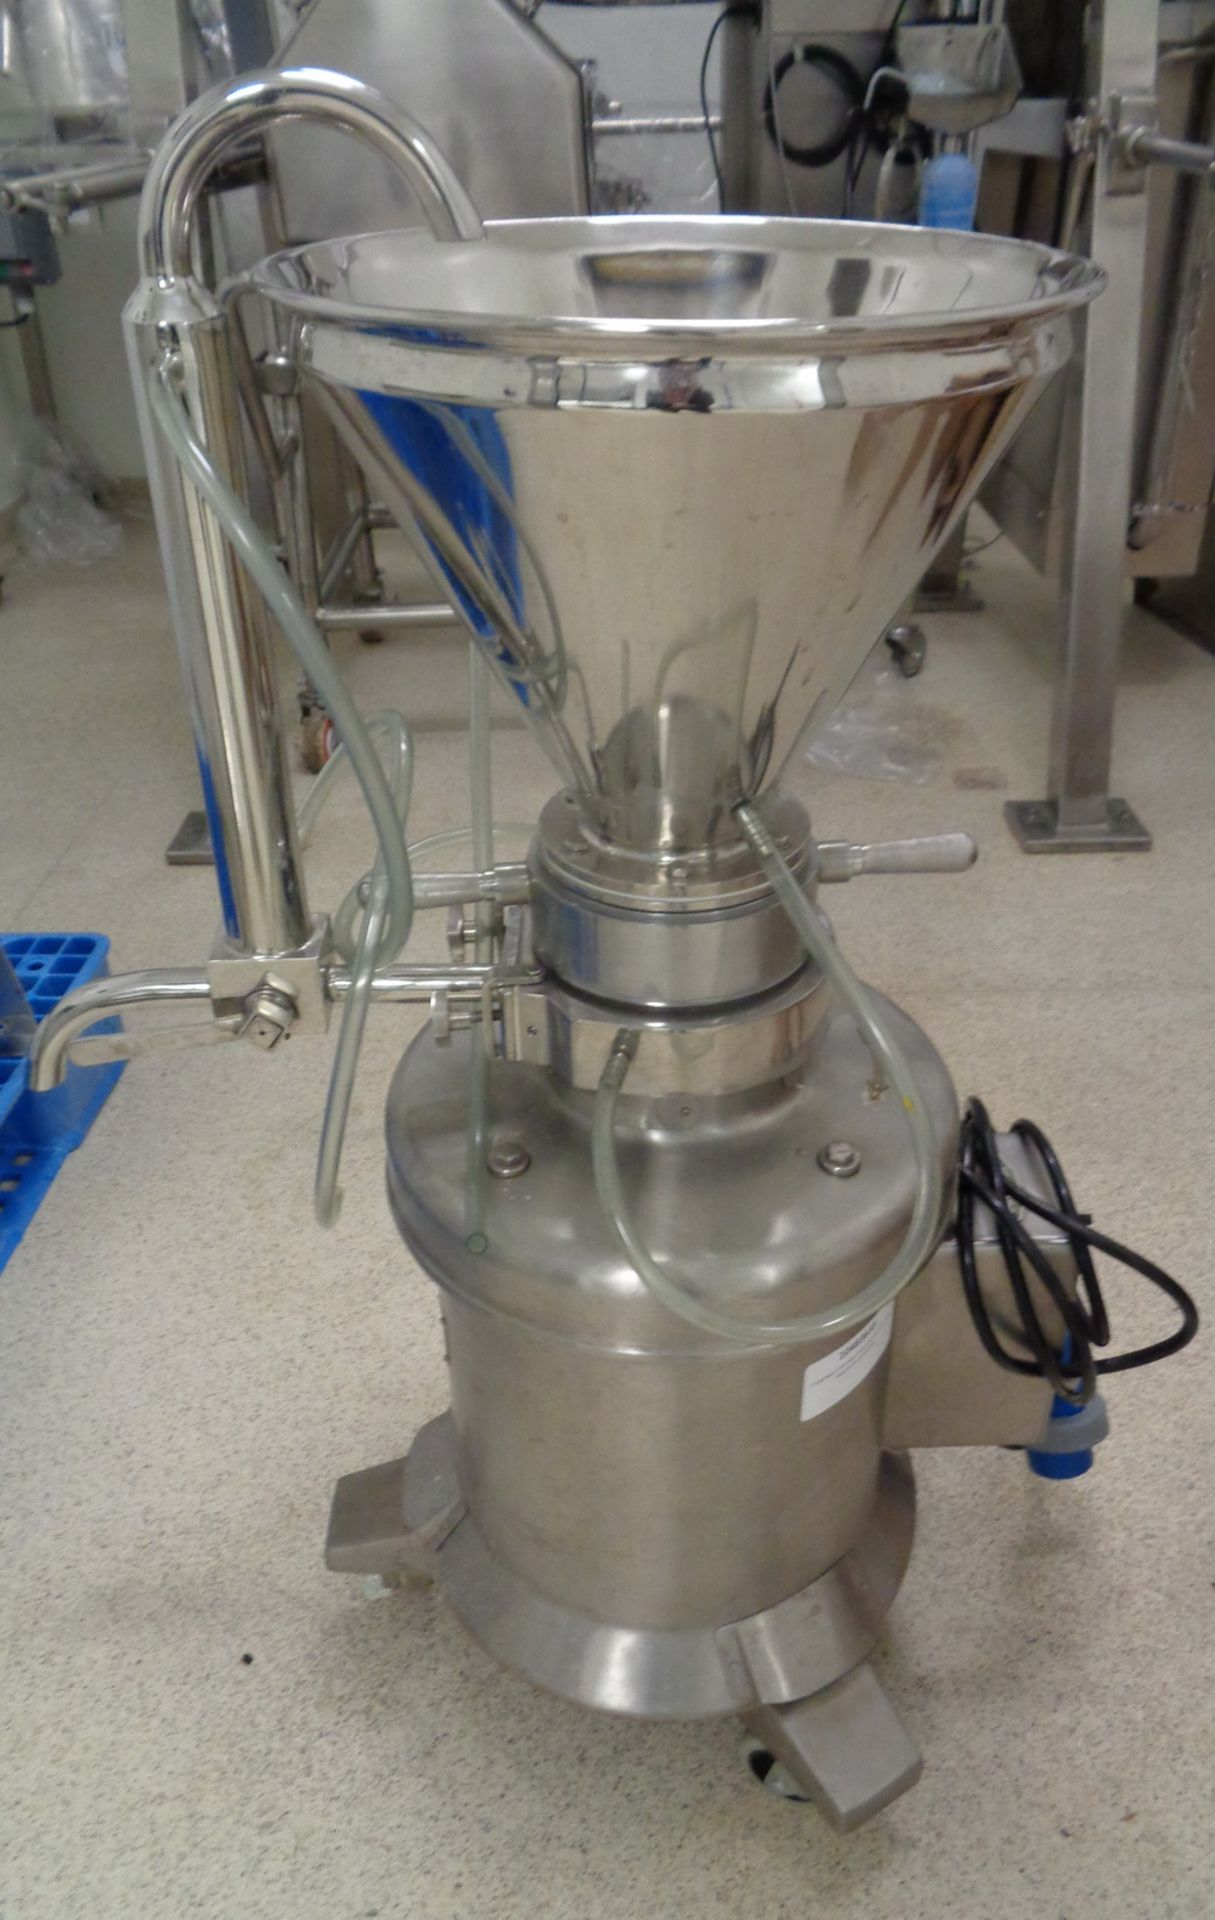 Lot 27 - Cadmach Stainless Steel Colloid Mill, Model CMCM 5, S/N 0/1556/07-08